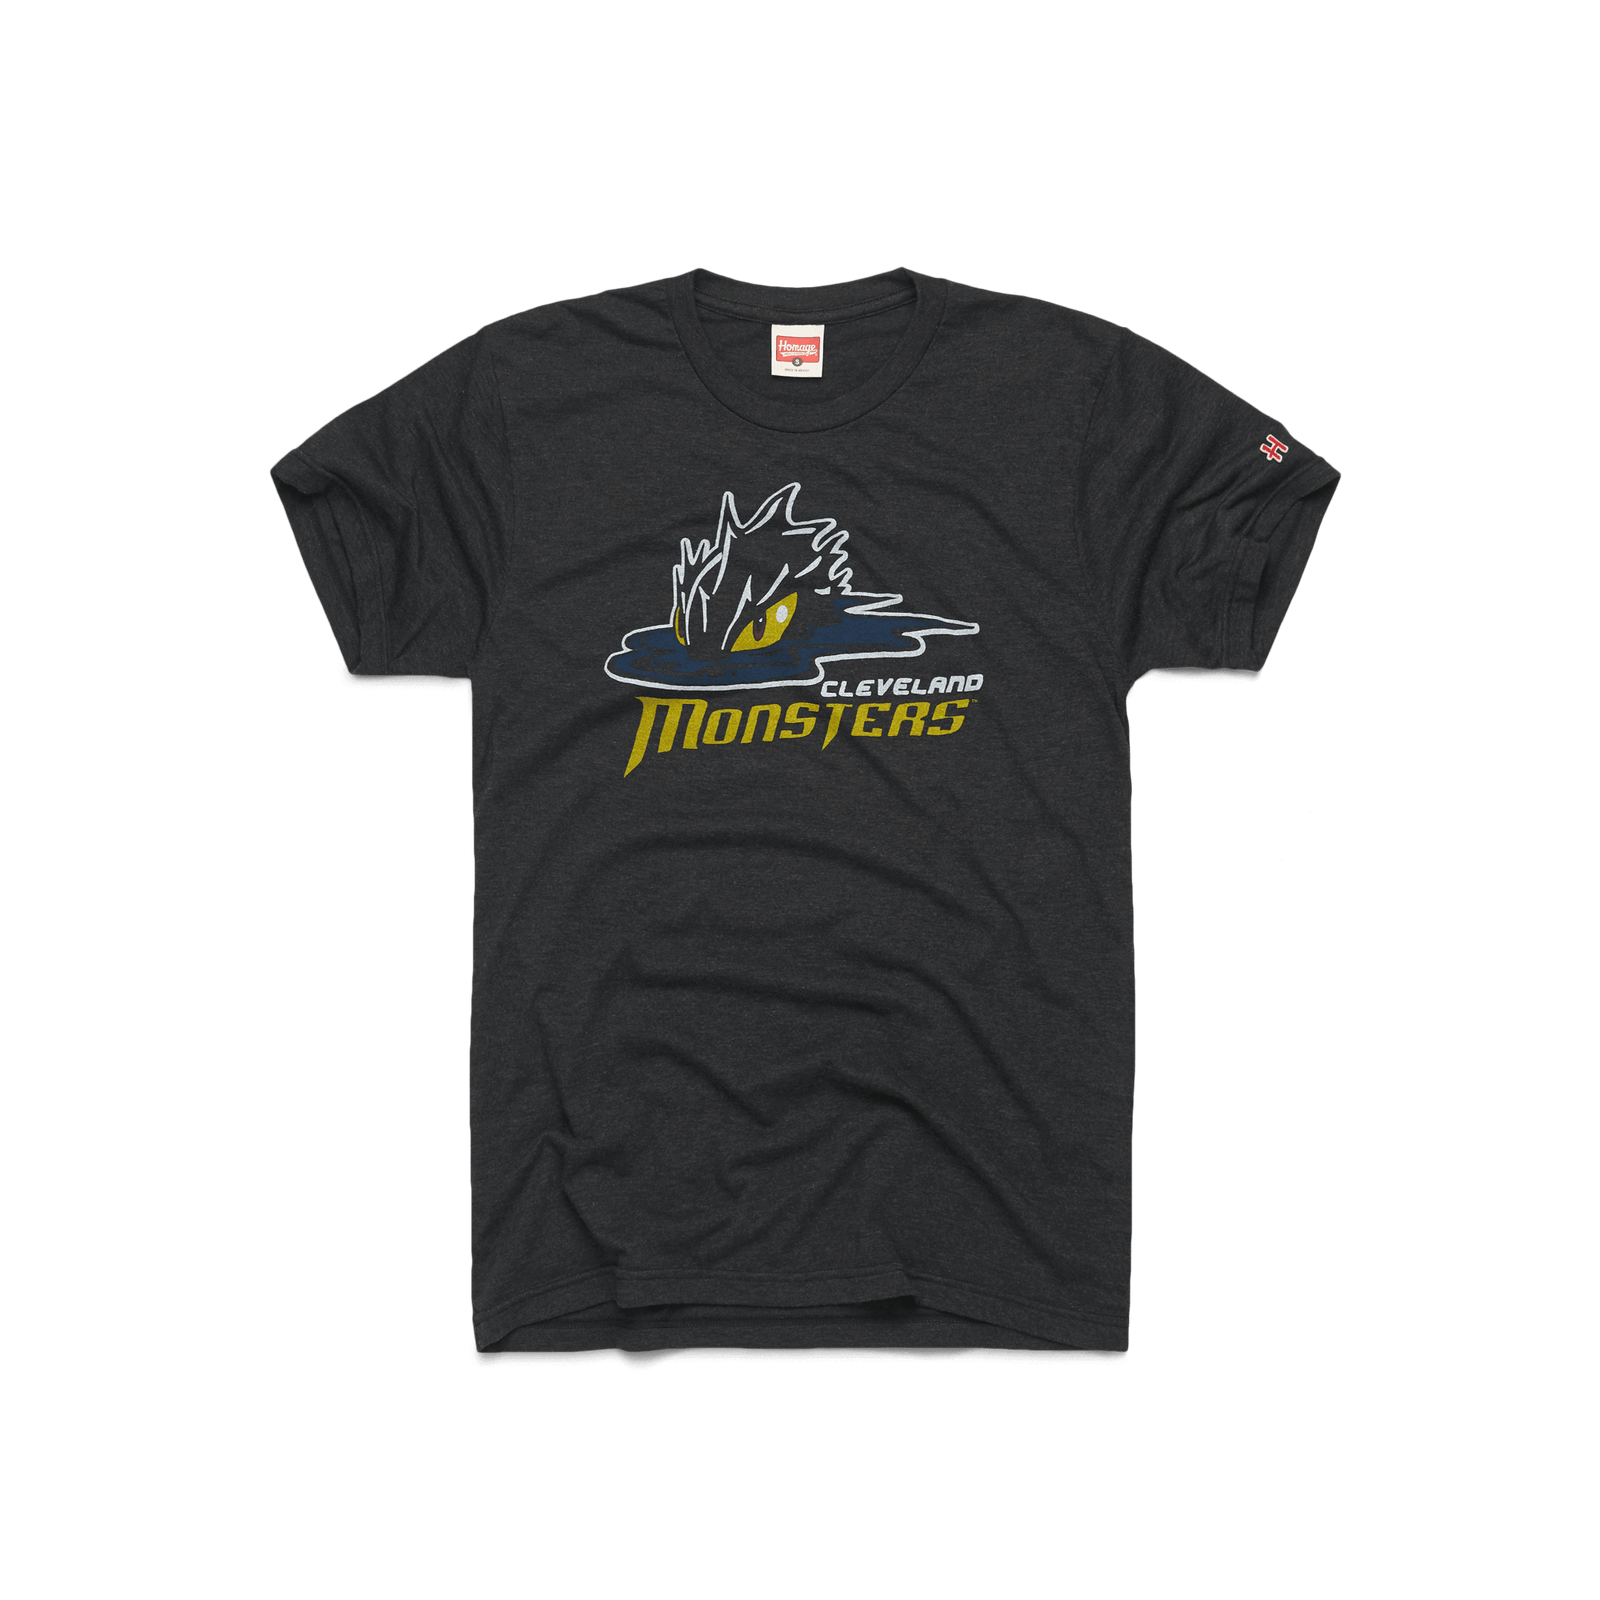 Cleveland Monsters CLE Ohio American Hockey League T-Shirt – HOMAGE 773ba5c81de2